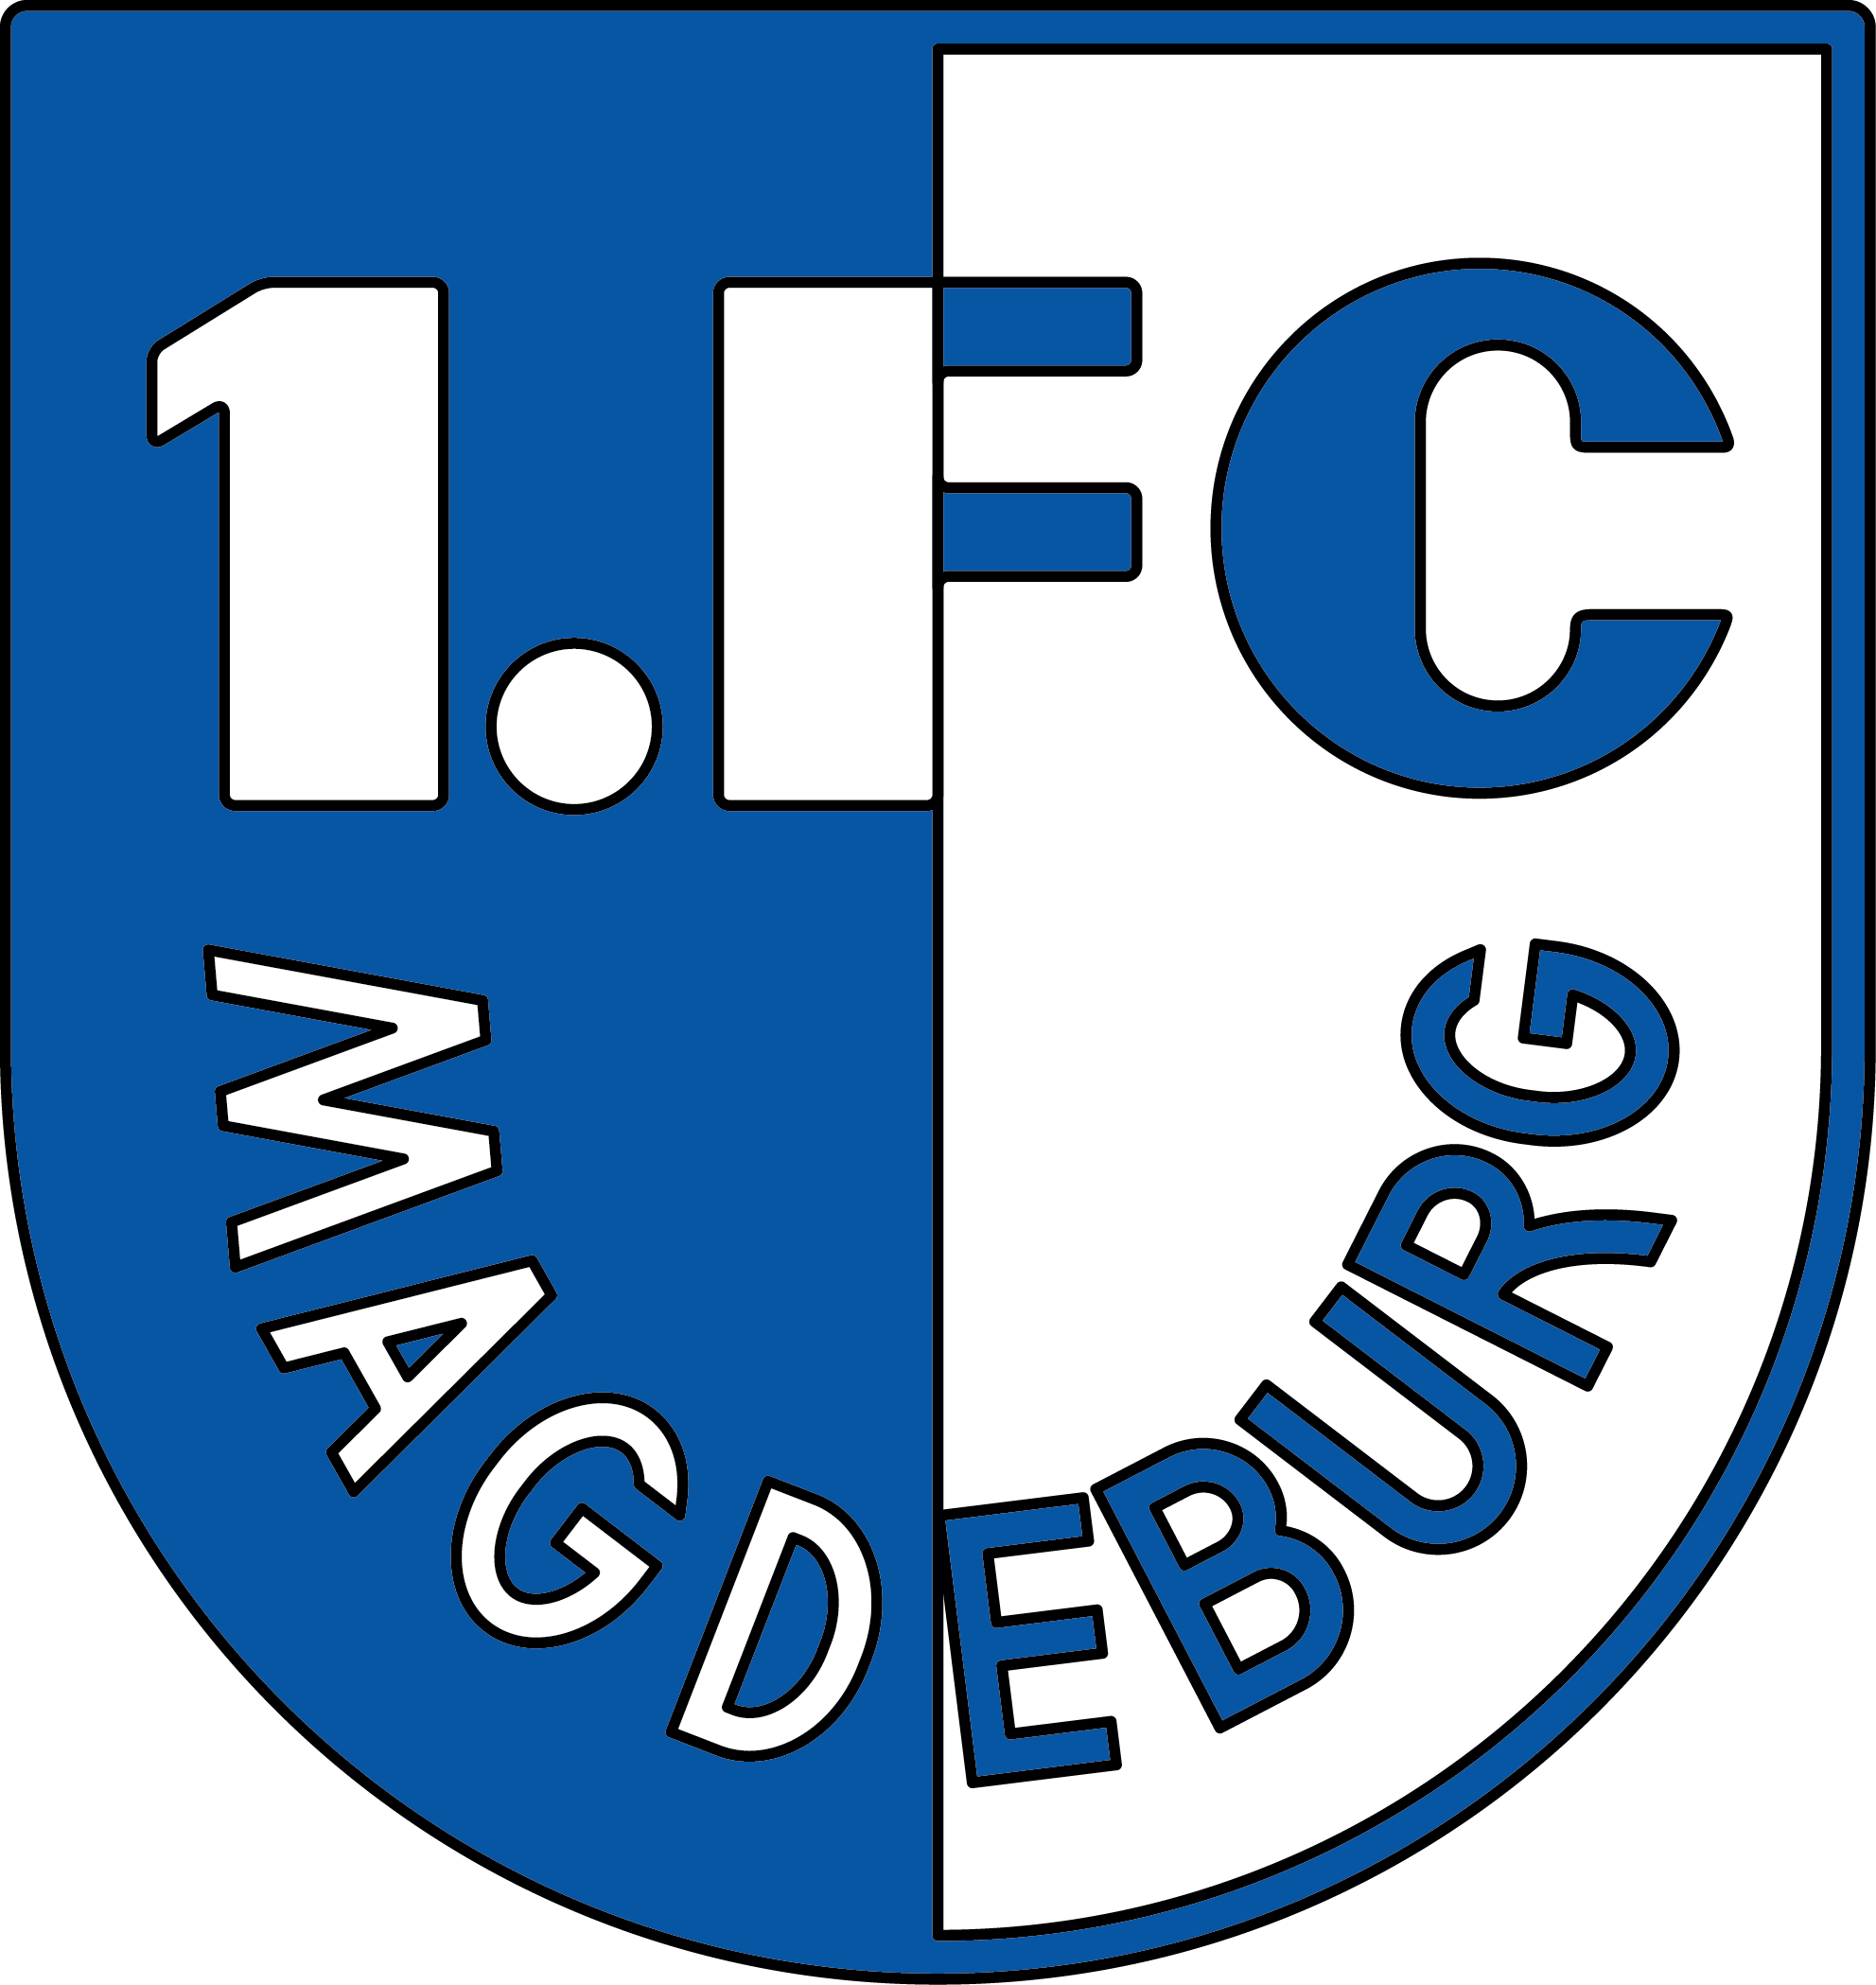 Pin Auf Football Logos